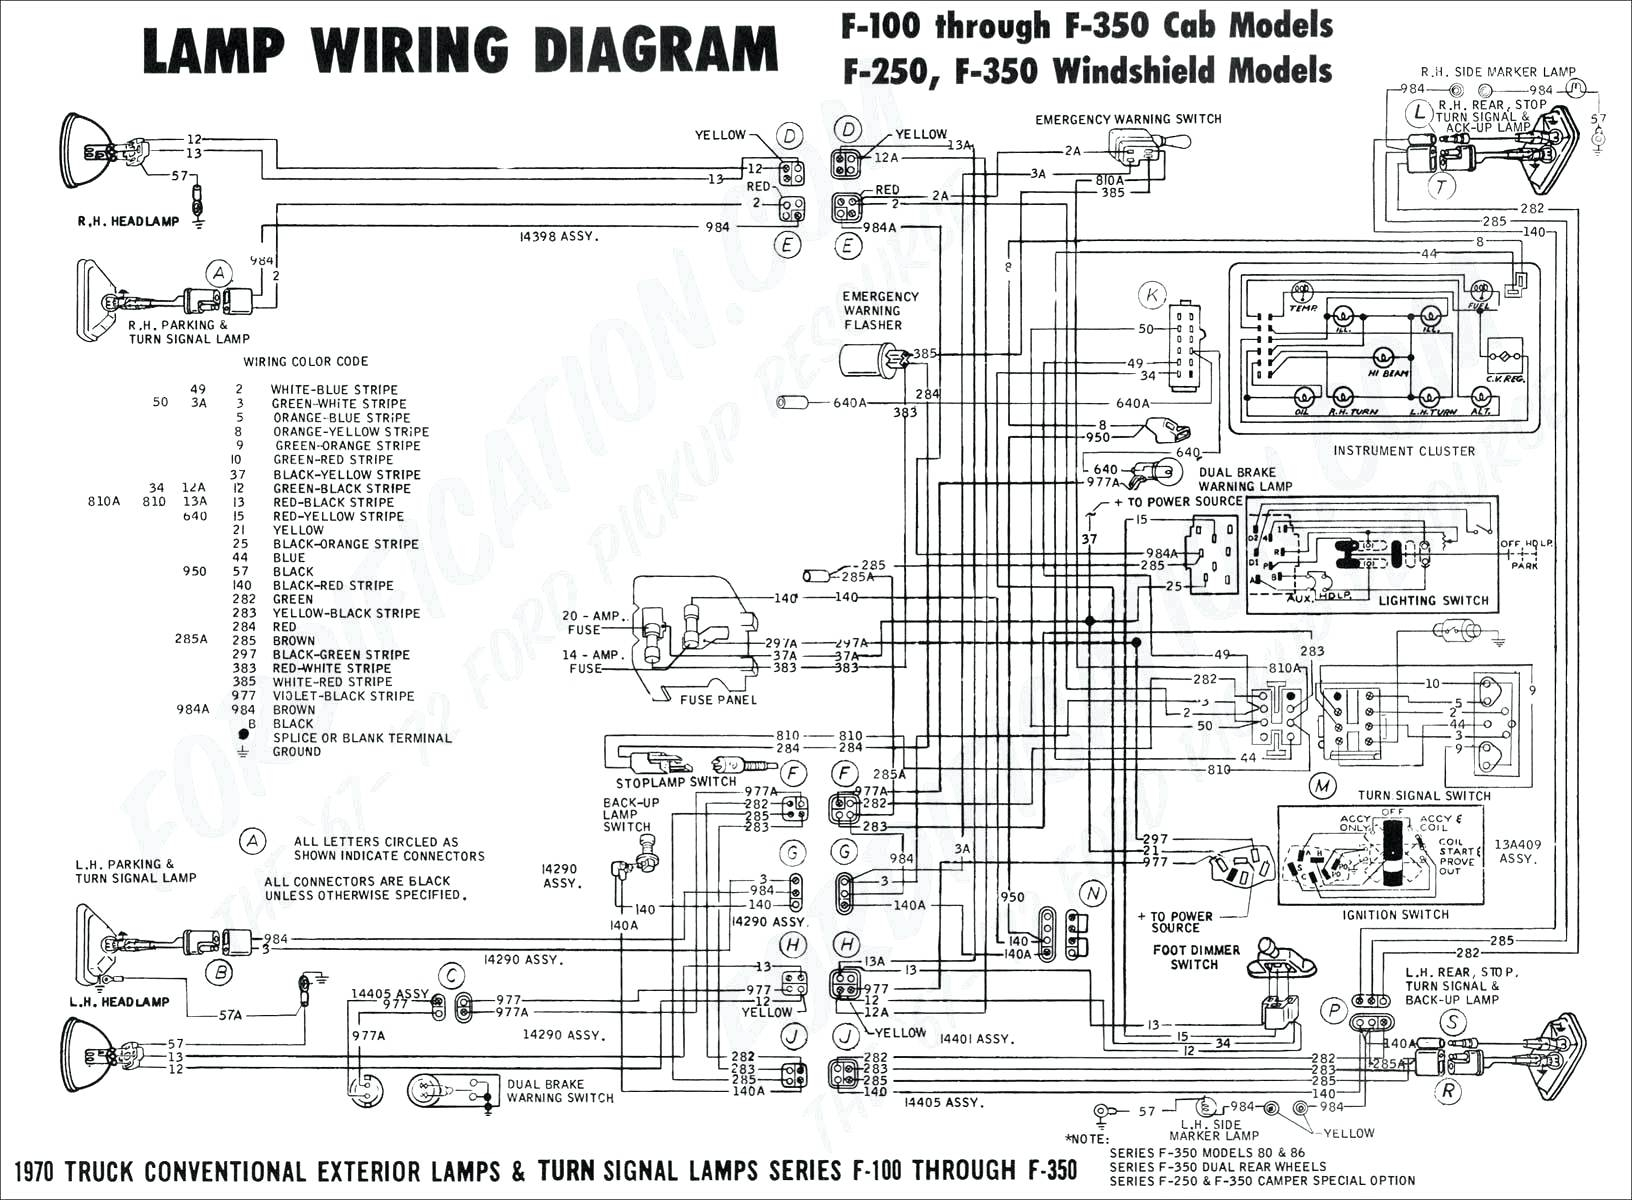 Ford F350 Super Duty Engine Diagram - Wiring Diagram